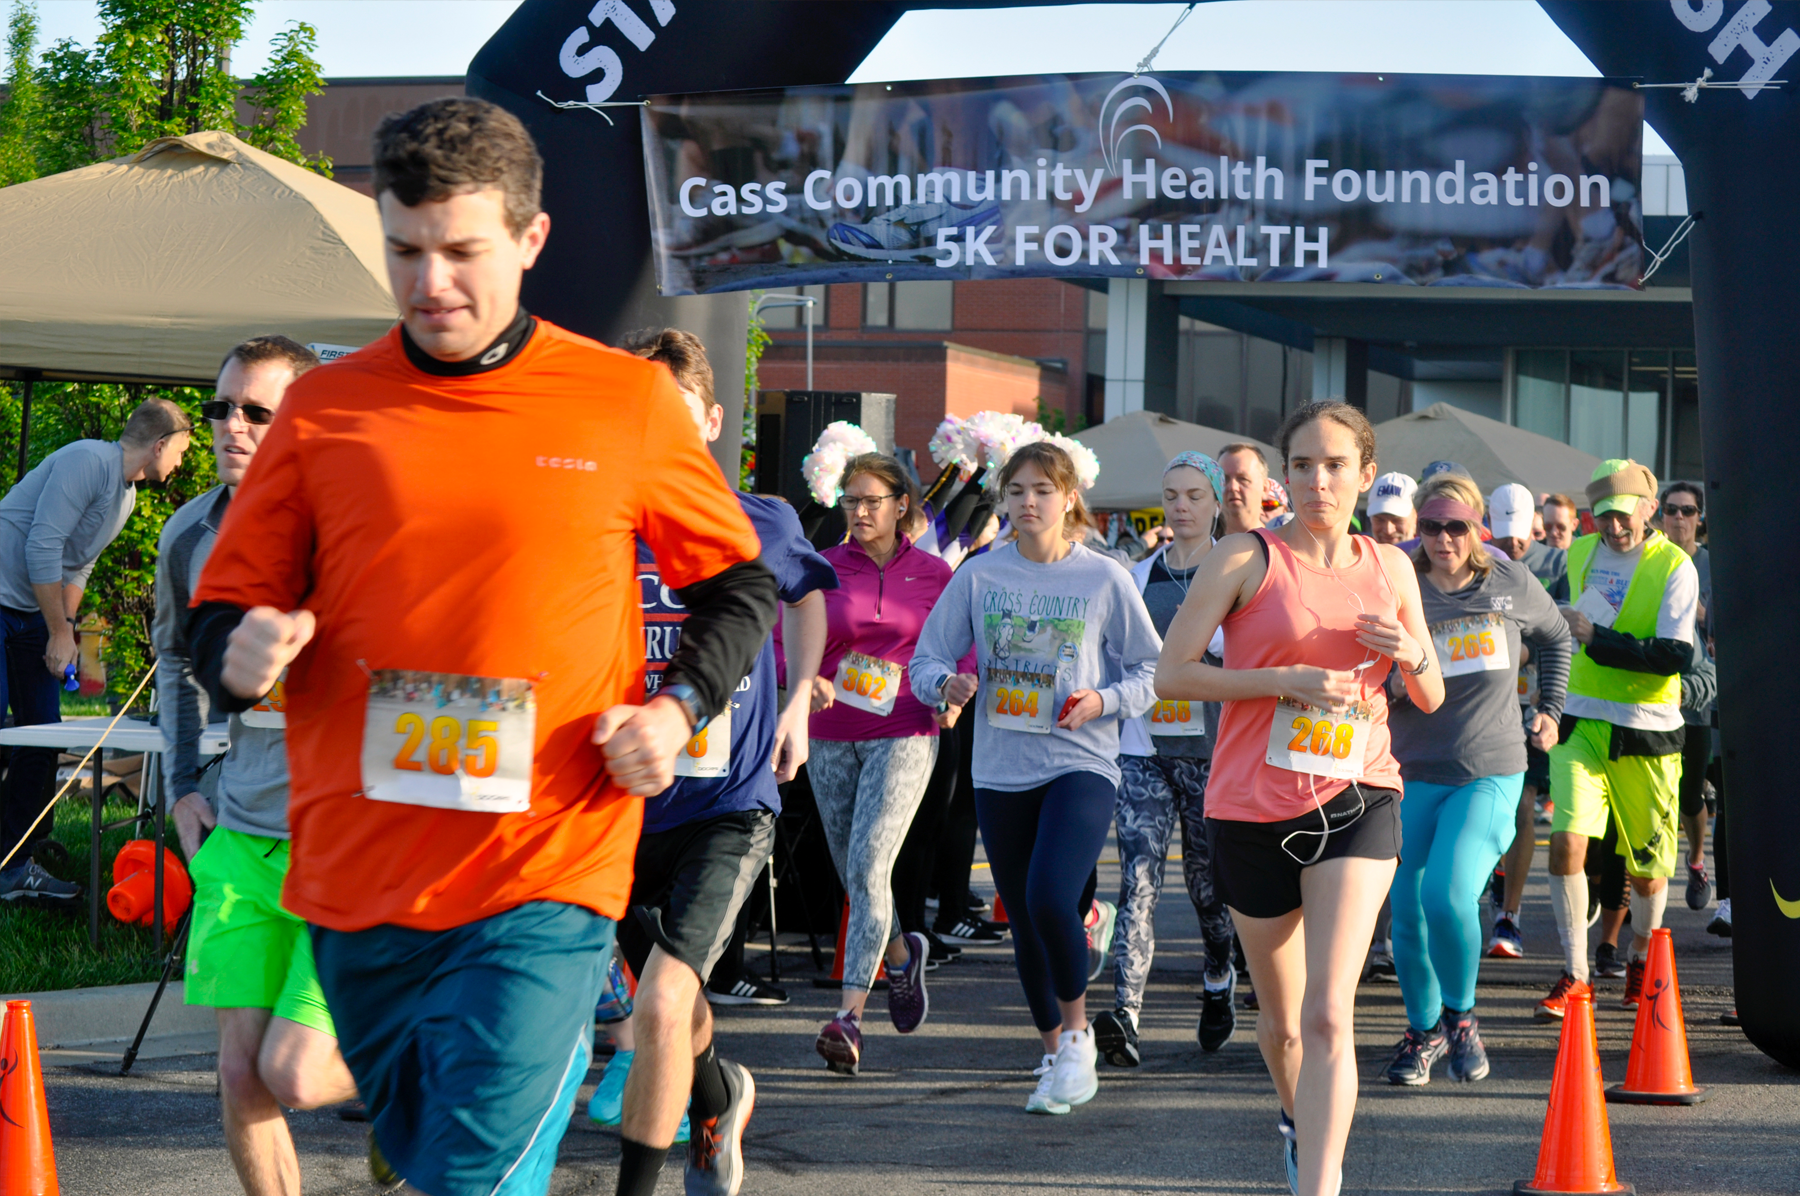 26th Annual 5K for Health rescheduled due to COVID-19